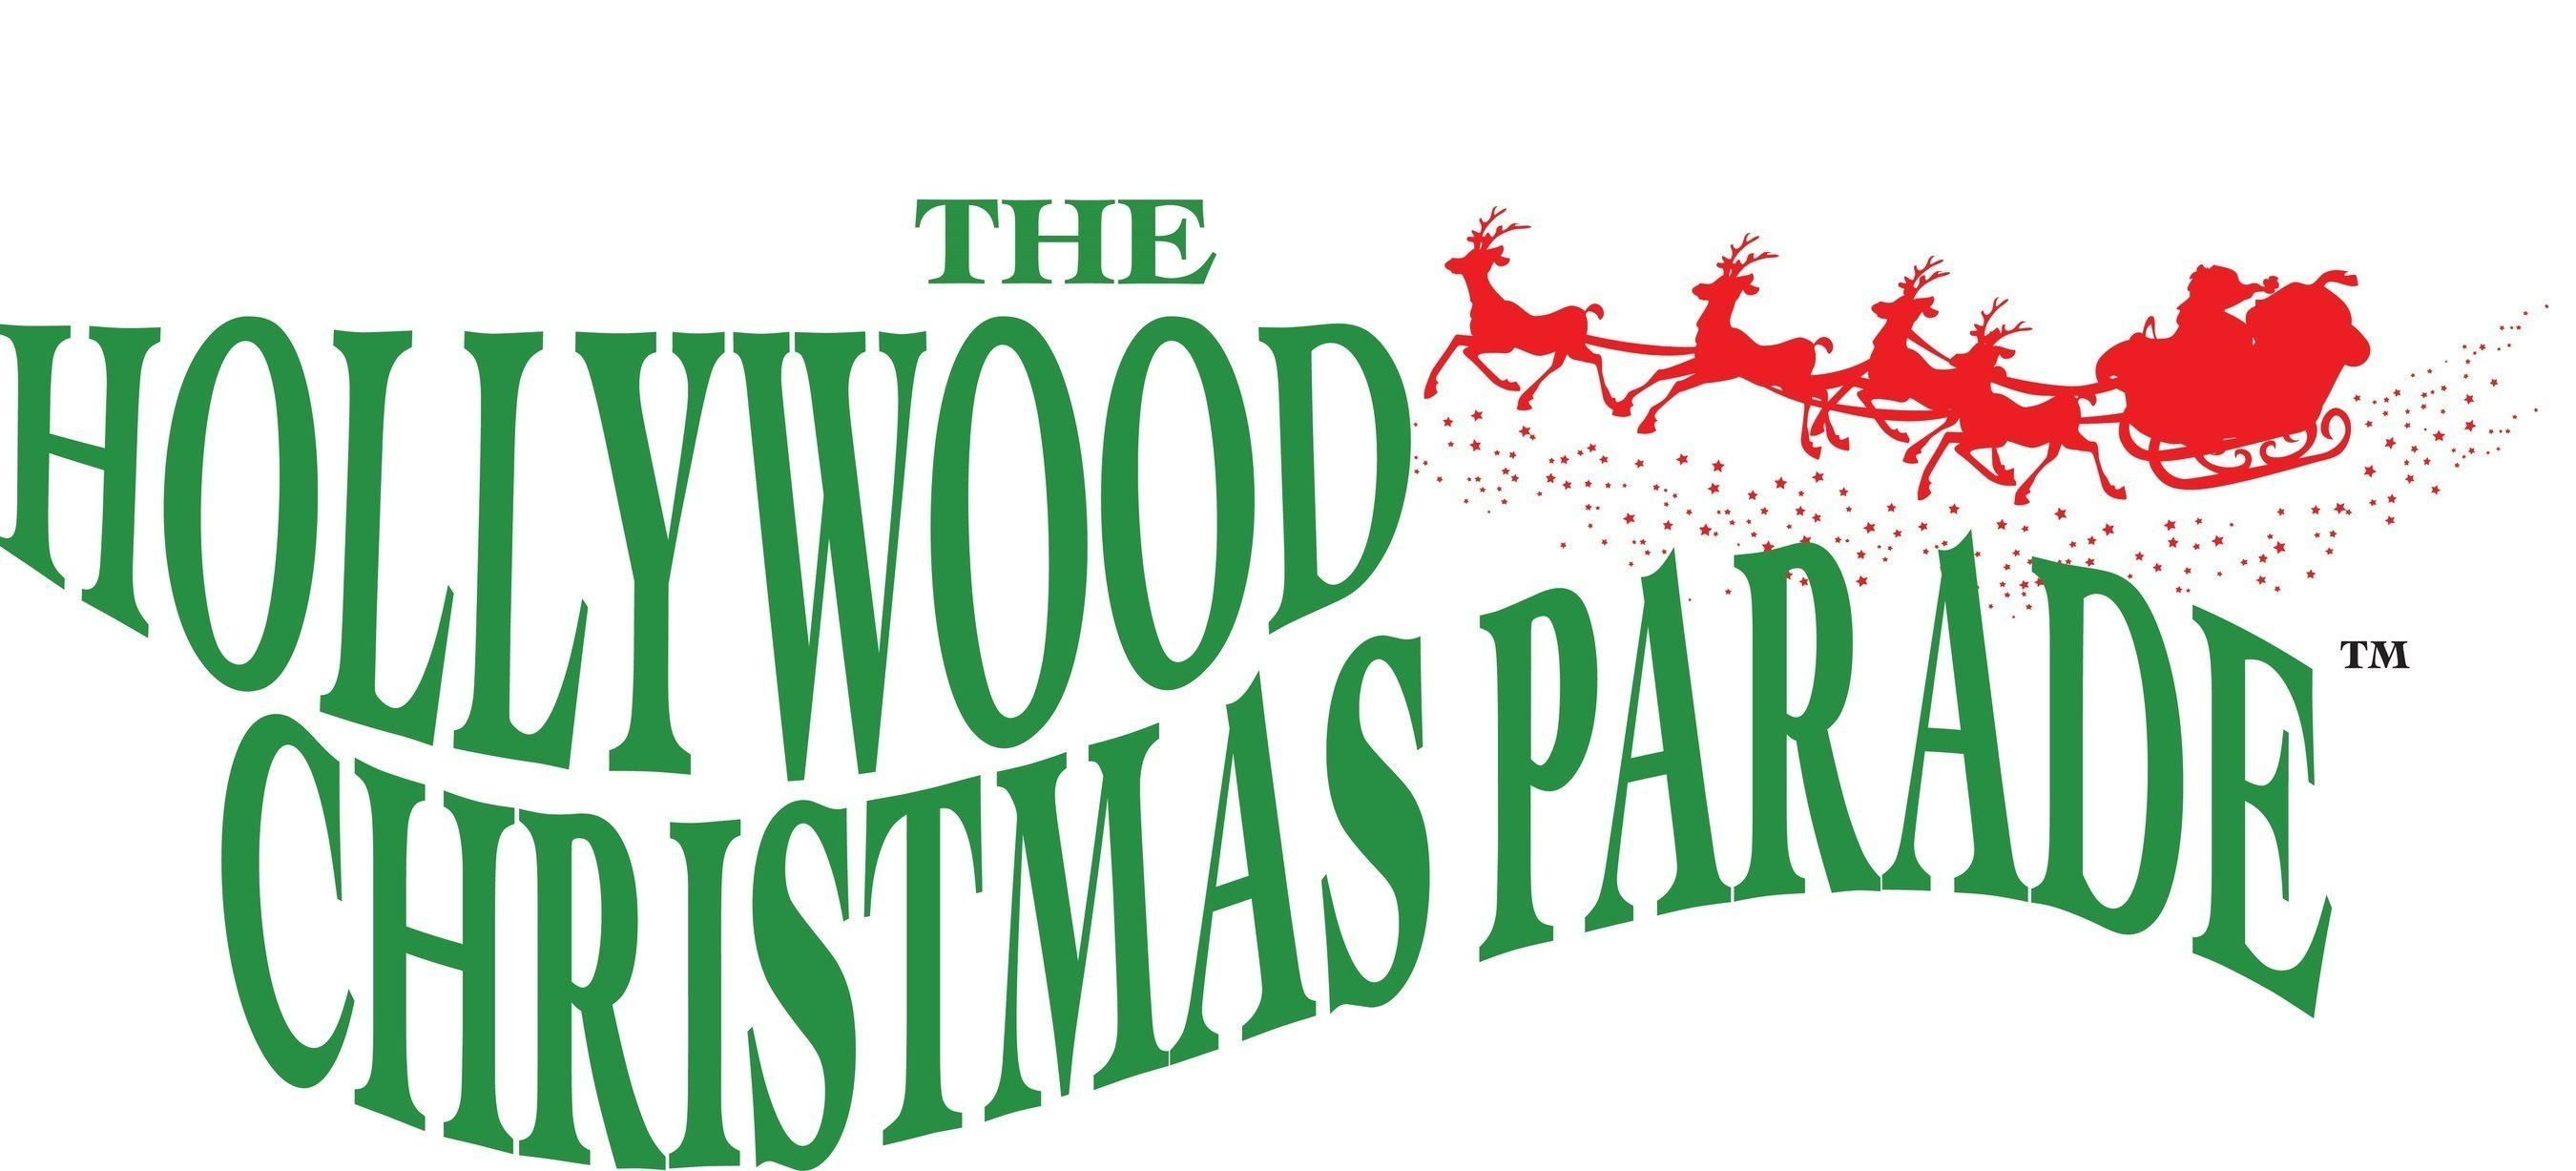 """84TH ANNUAL HOLLYWOOD CHRISTMAS PARADE ANNOUNCES """"MAGIC OF CHRISTMAS!"""" LINEUP FOR 2015 HELD IN HOLLYWOOD, CA ON NOV. 29"""